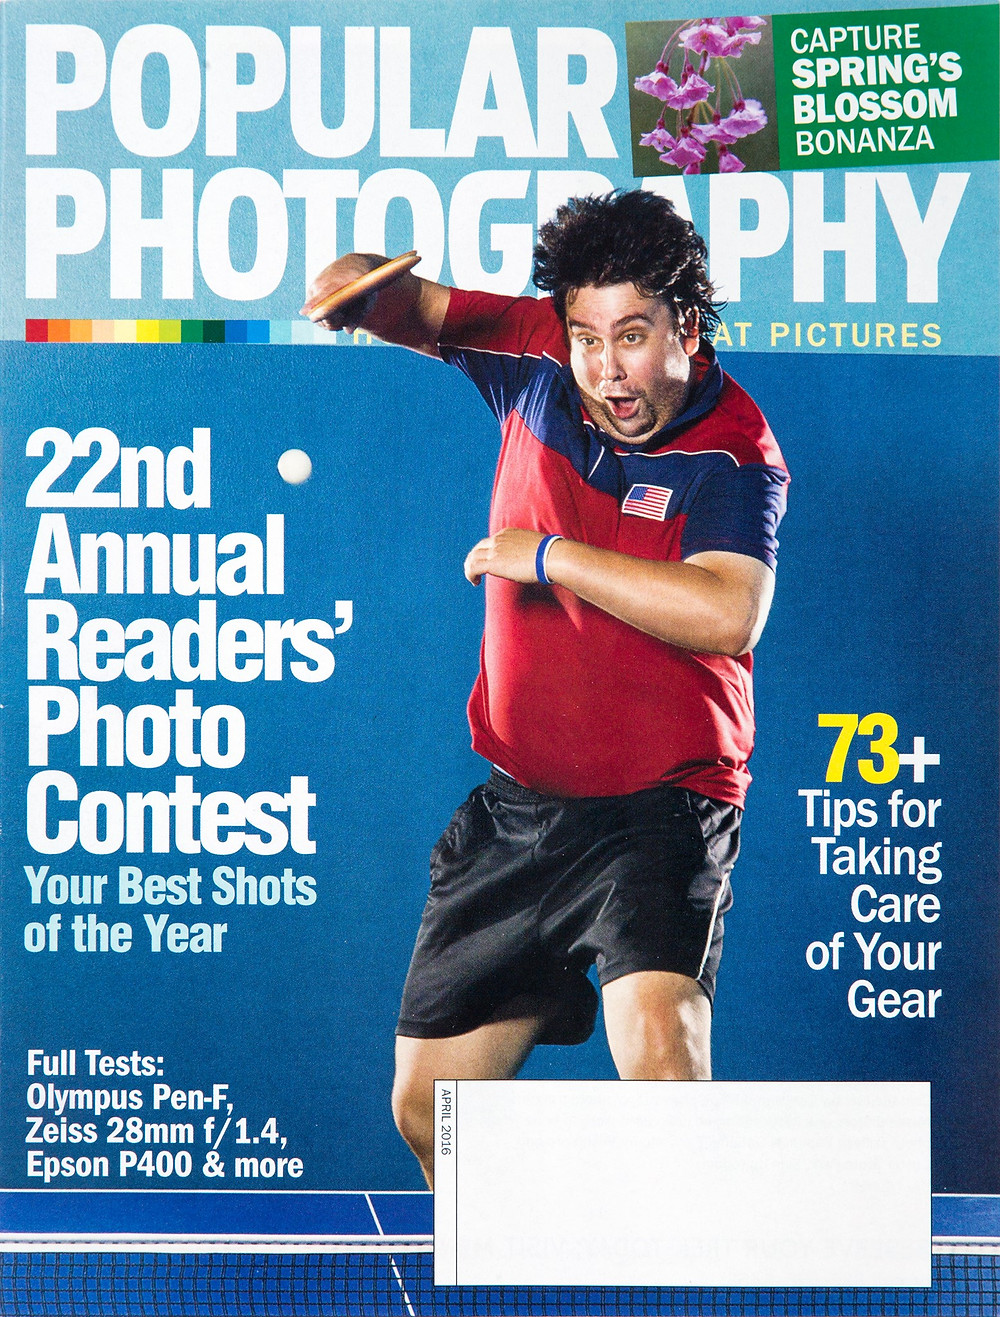 Ping Pong Guy, cover of popular photography